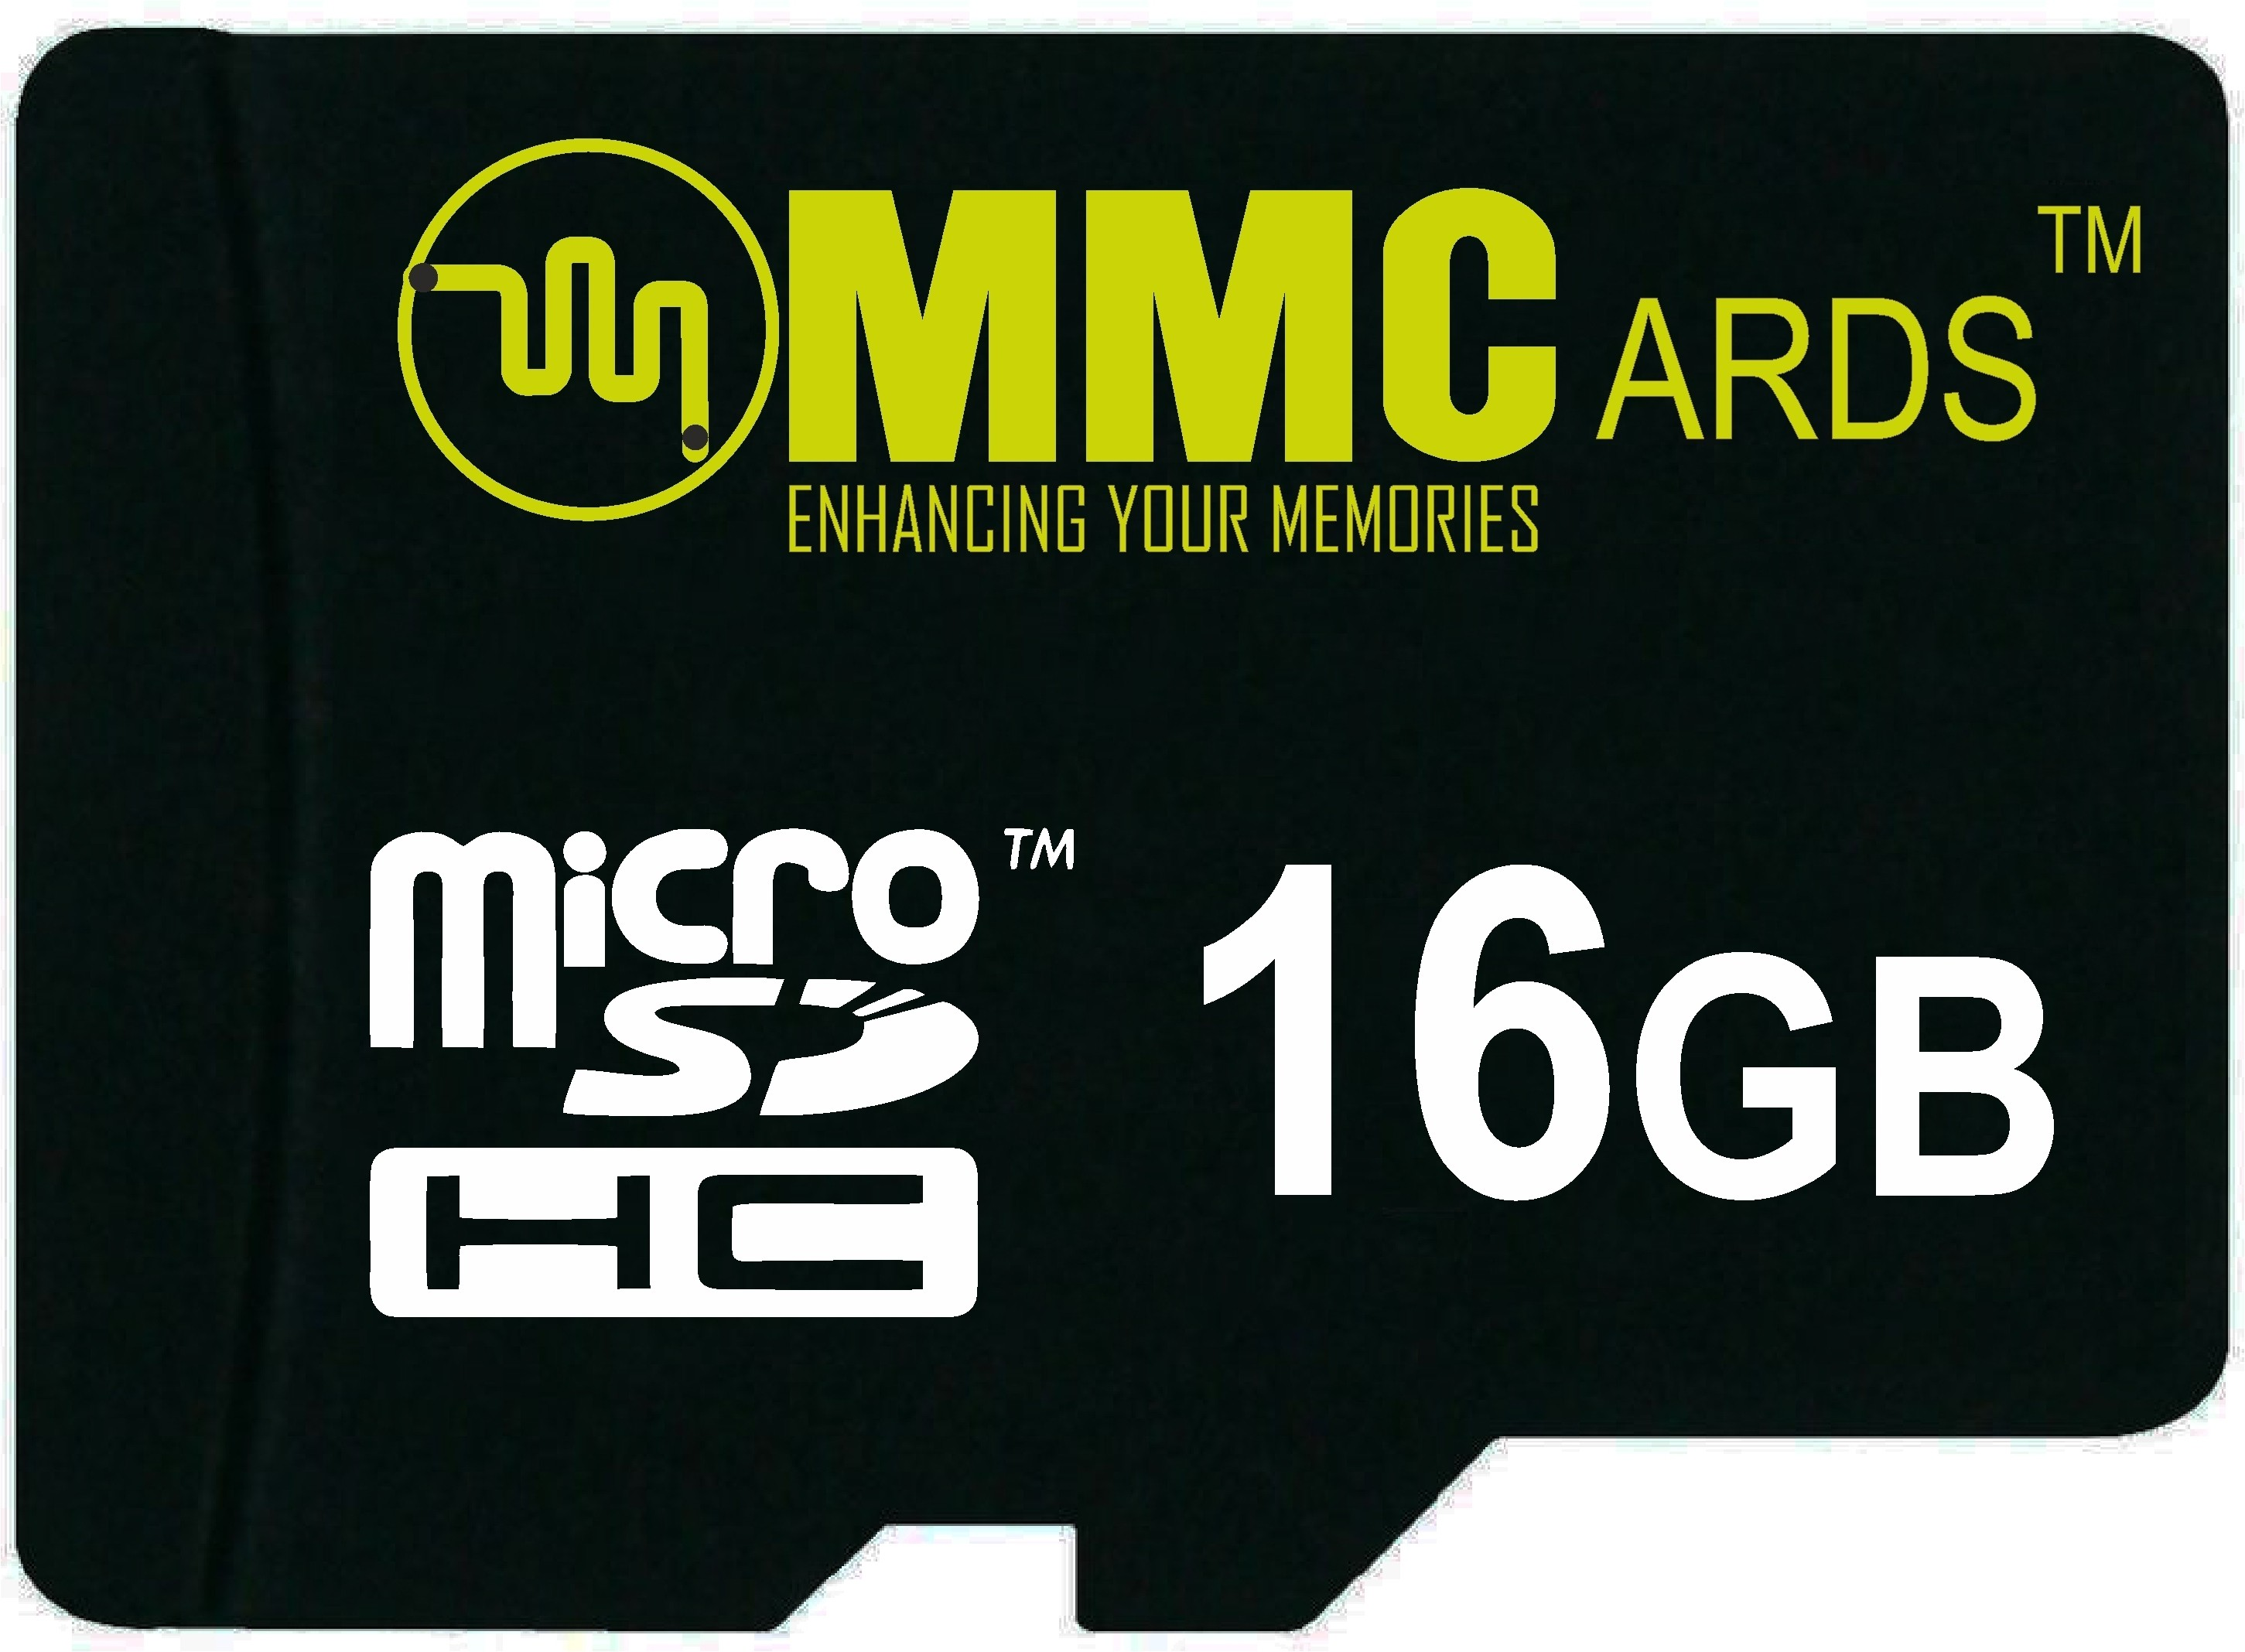 Deals - Bangalore - 16GB Memory Cards <br> SanDisk, Samsung & more<br> Category - mobiles_and_accessories<br> Business - Flipkart.com